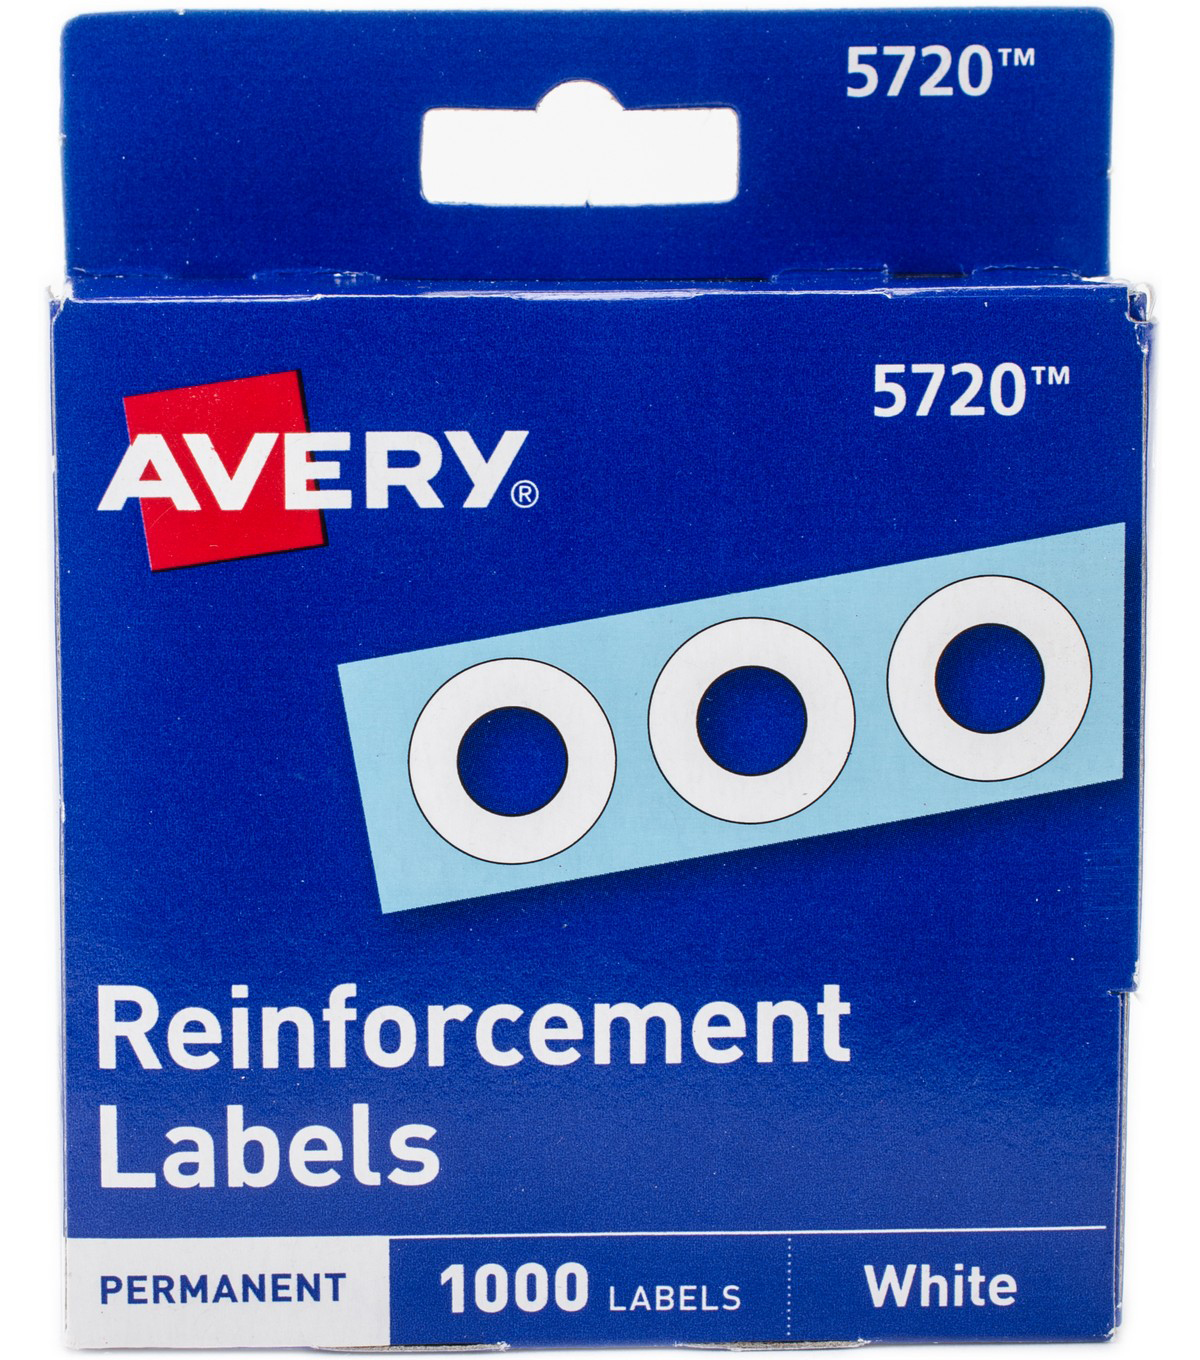 Avery 1000 pk Self-adhesive Reinforcement Labels-White